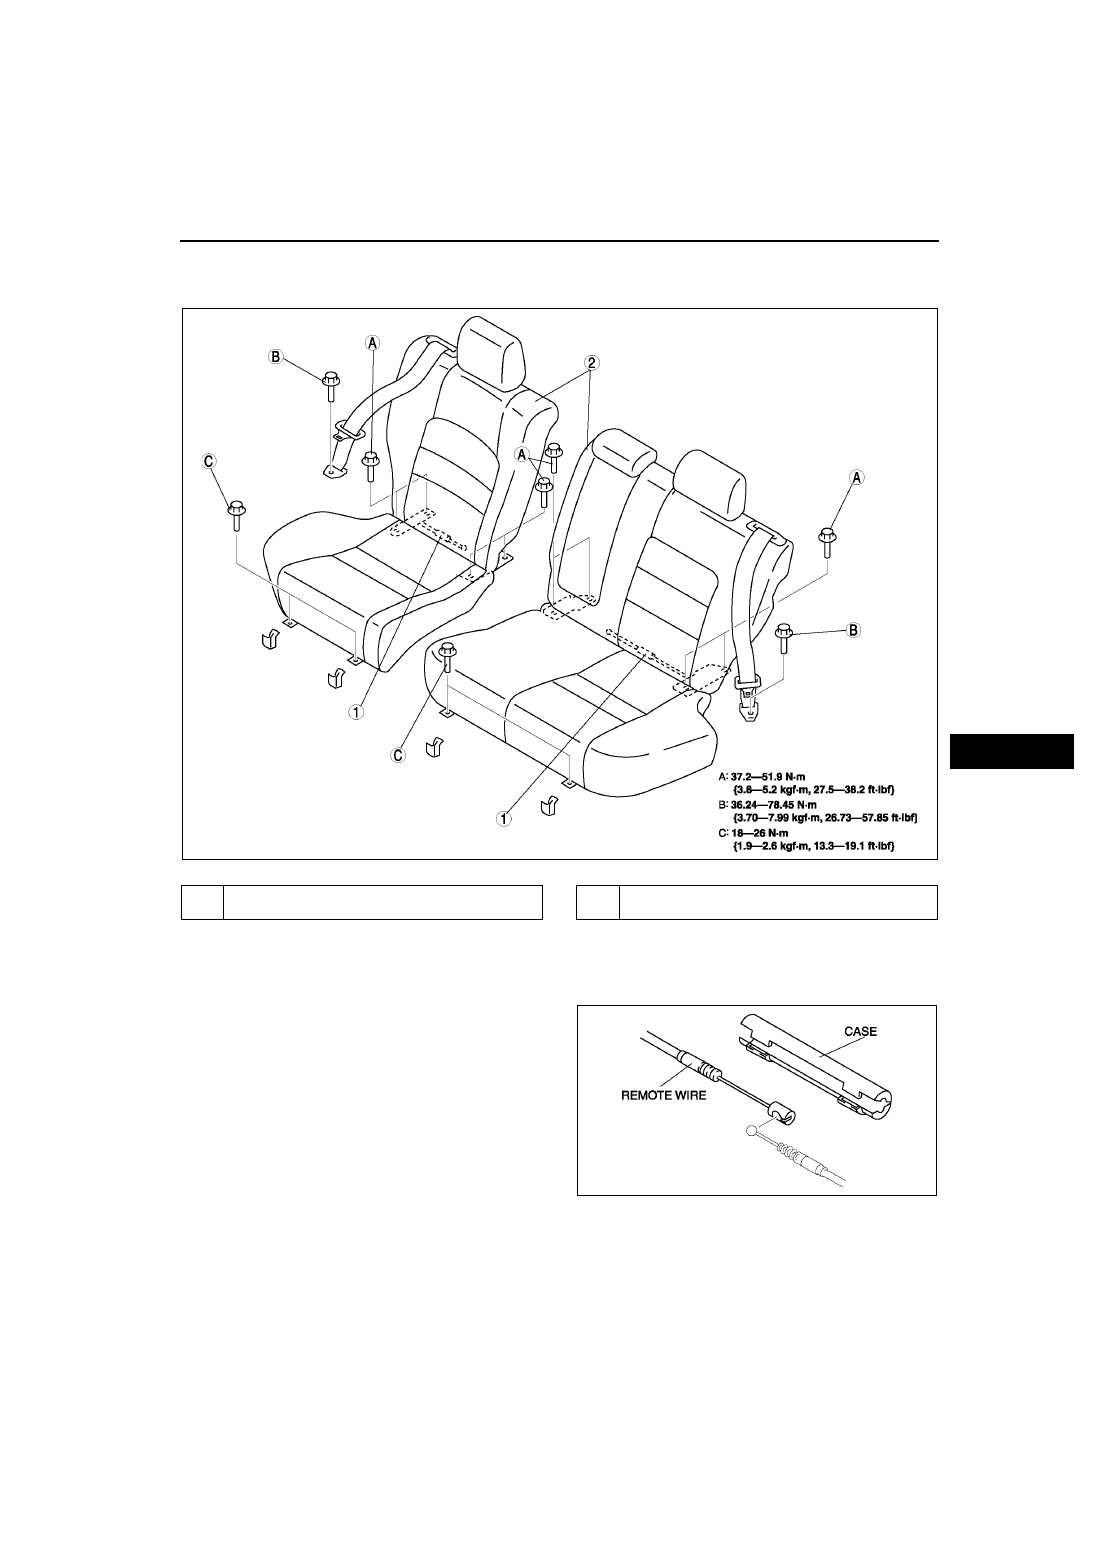 Mazda 3 Service Manual: Rear Seat Back Frame RemovalInstallation